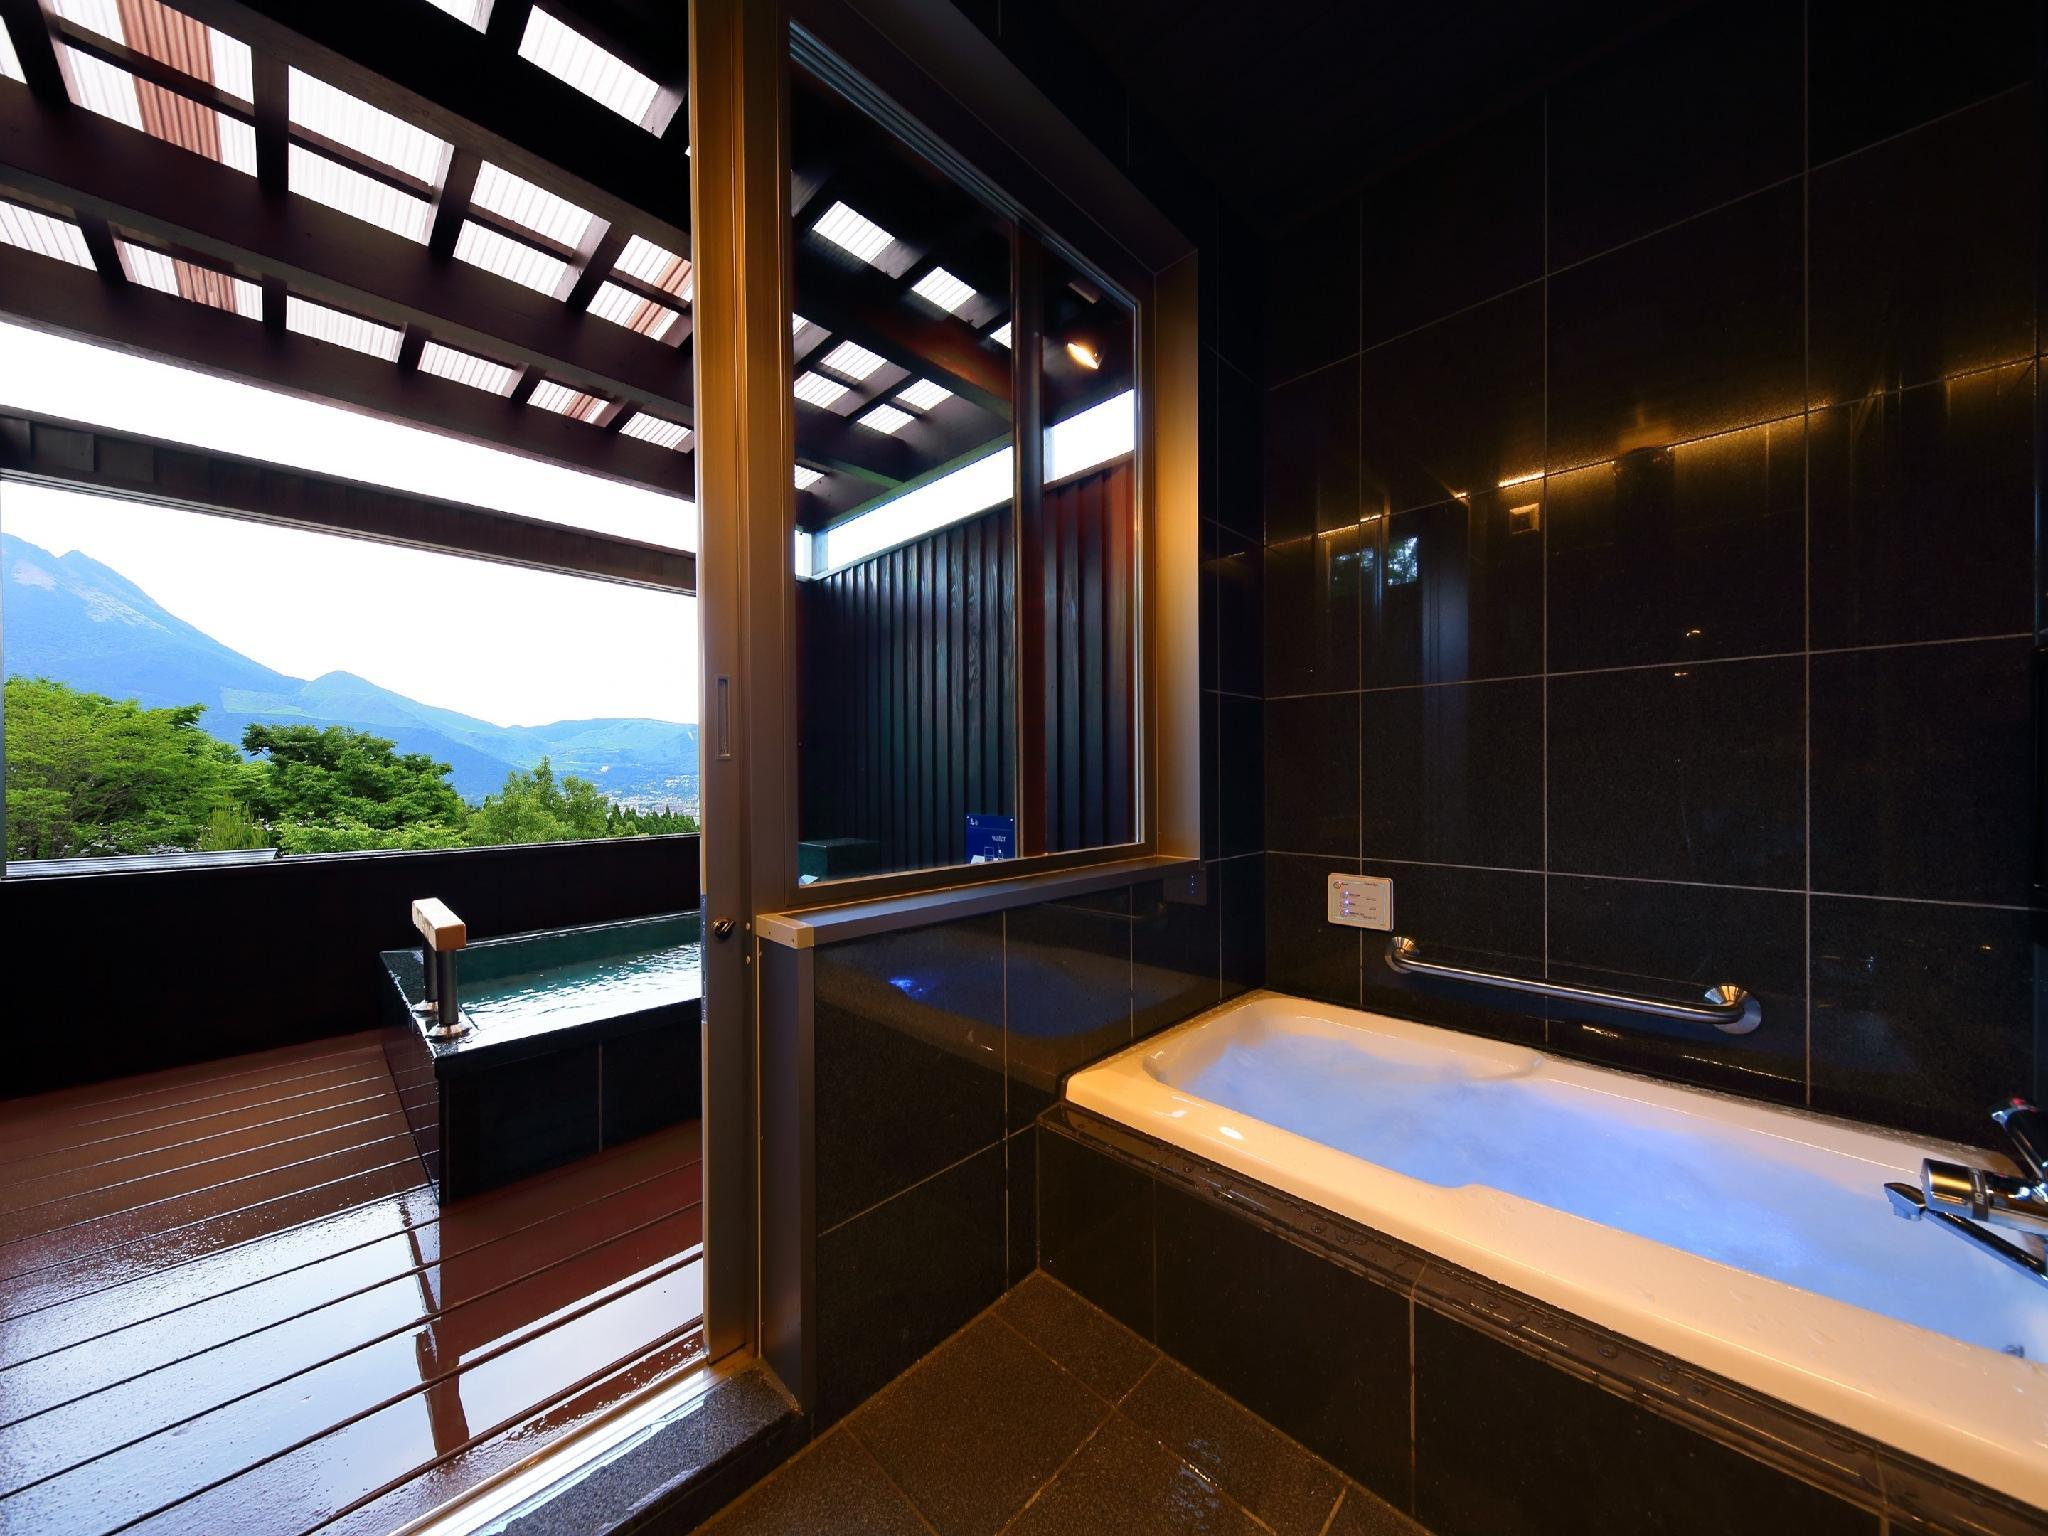 Detached Japanese/Western-style Room with Foot Bath, Open-air Bath, and Jacuzzi Bath (Type C, Hanayoshi Type)